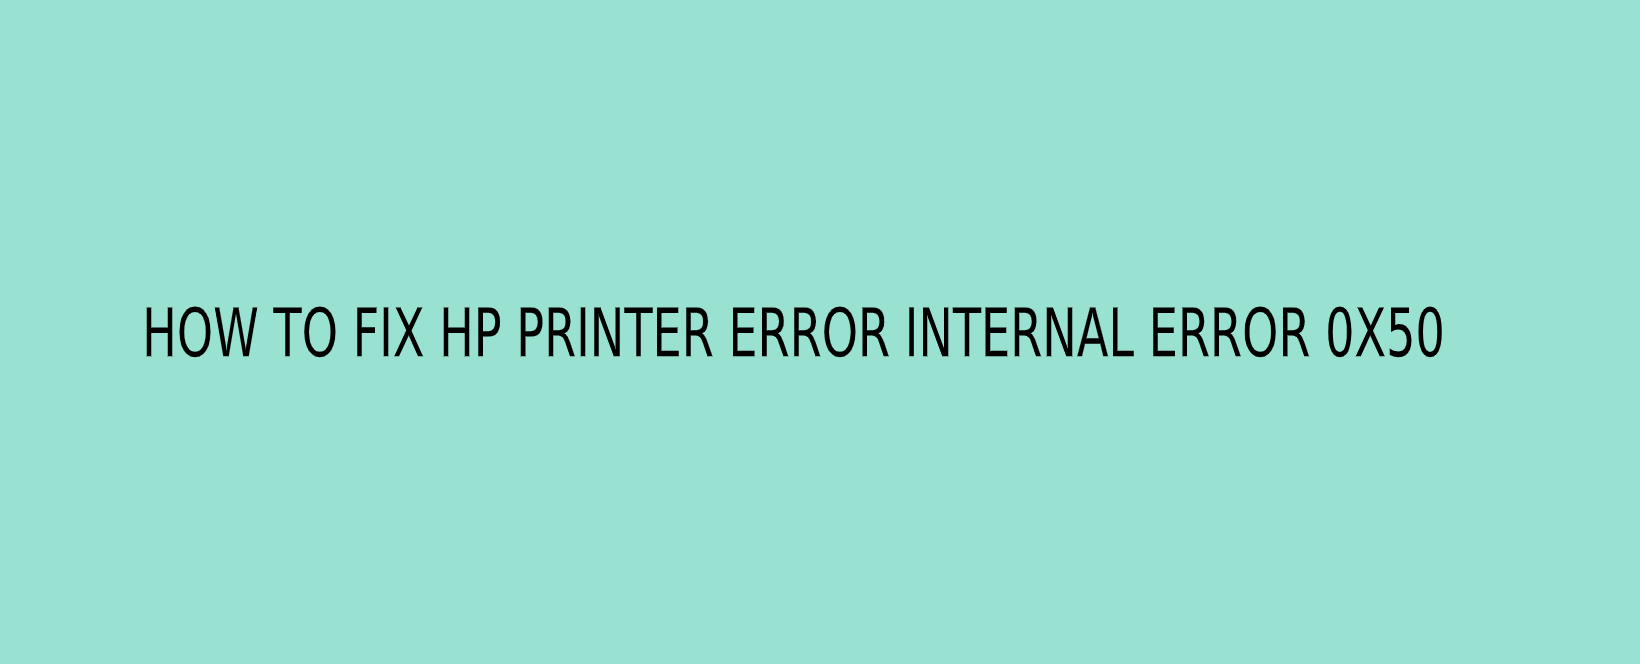 HOW-TO-FIX-HP-PRINTER-ERROR-INTERNAL-ERROR-0X50